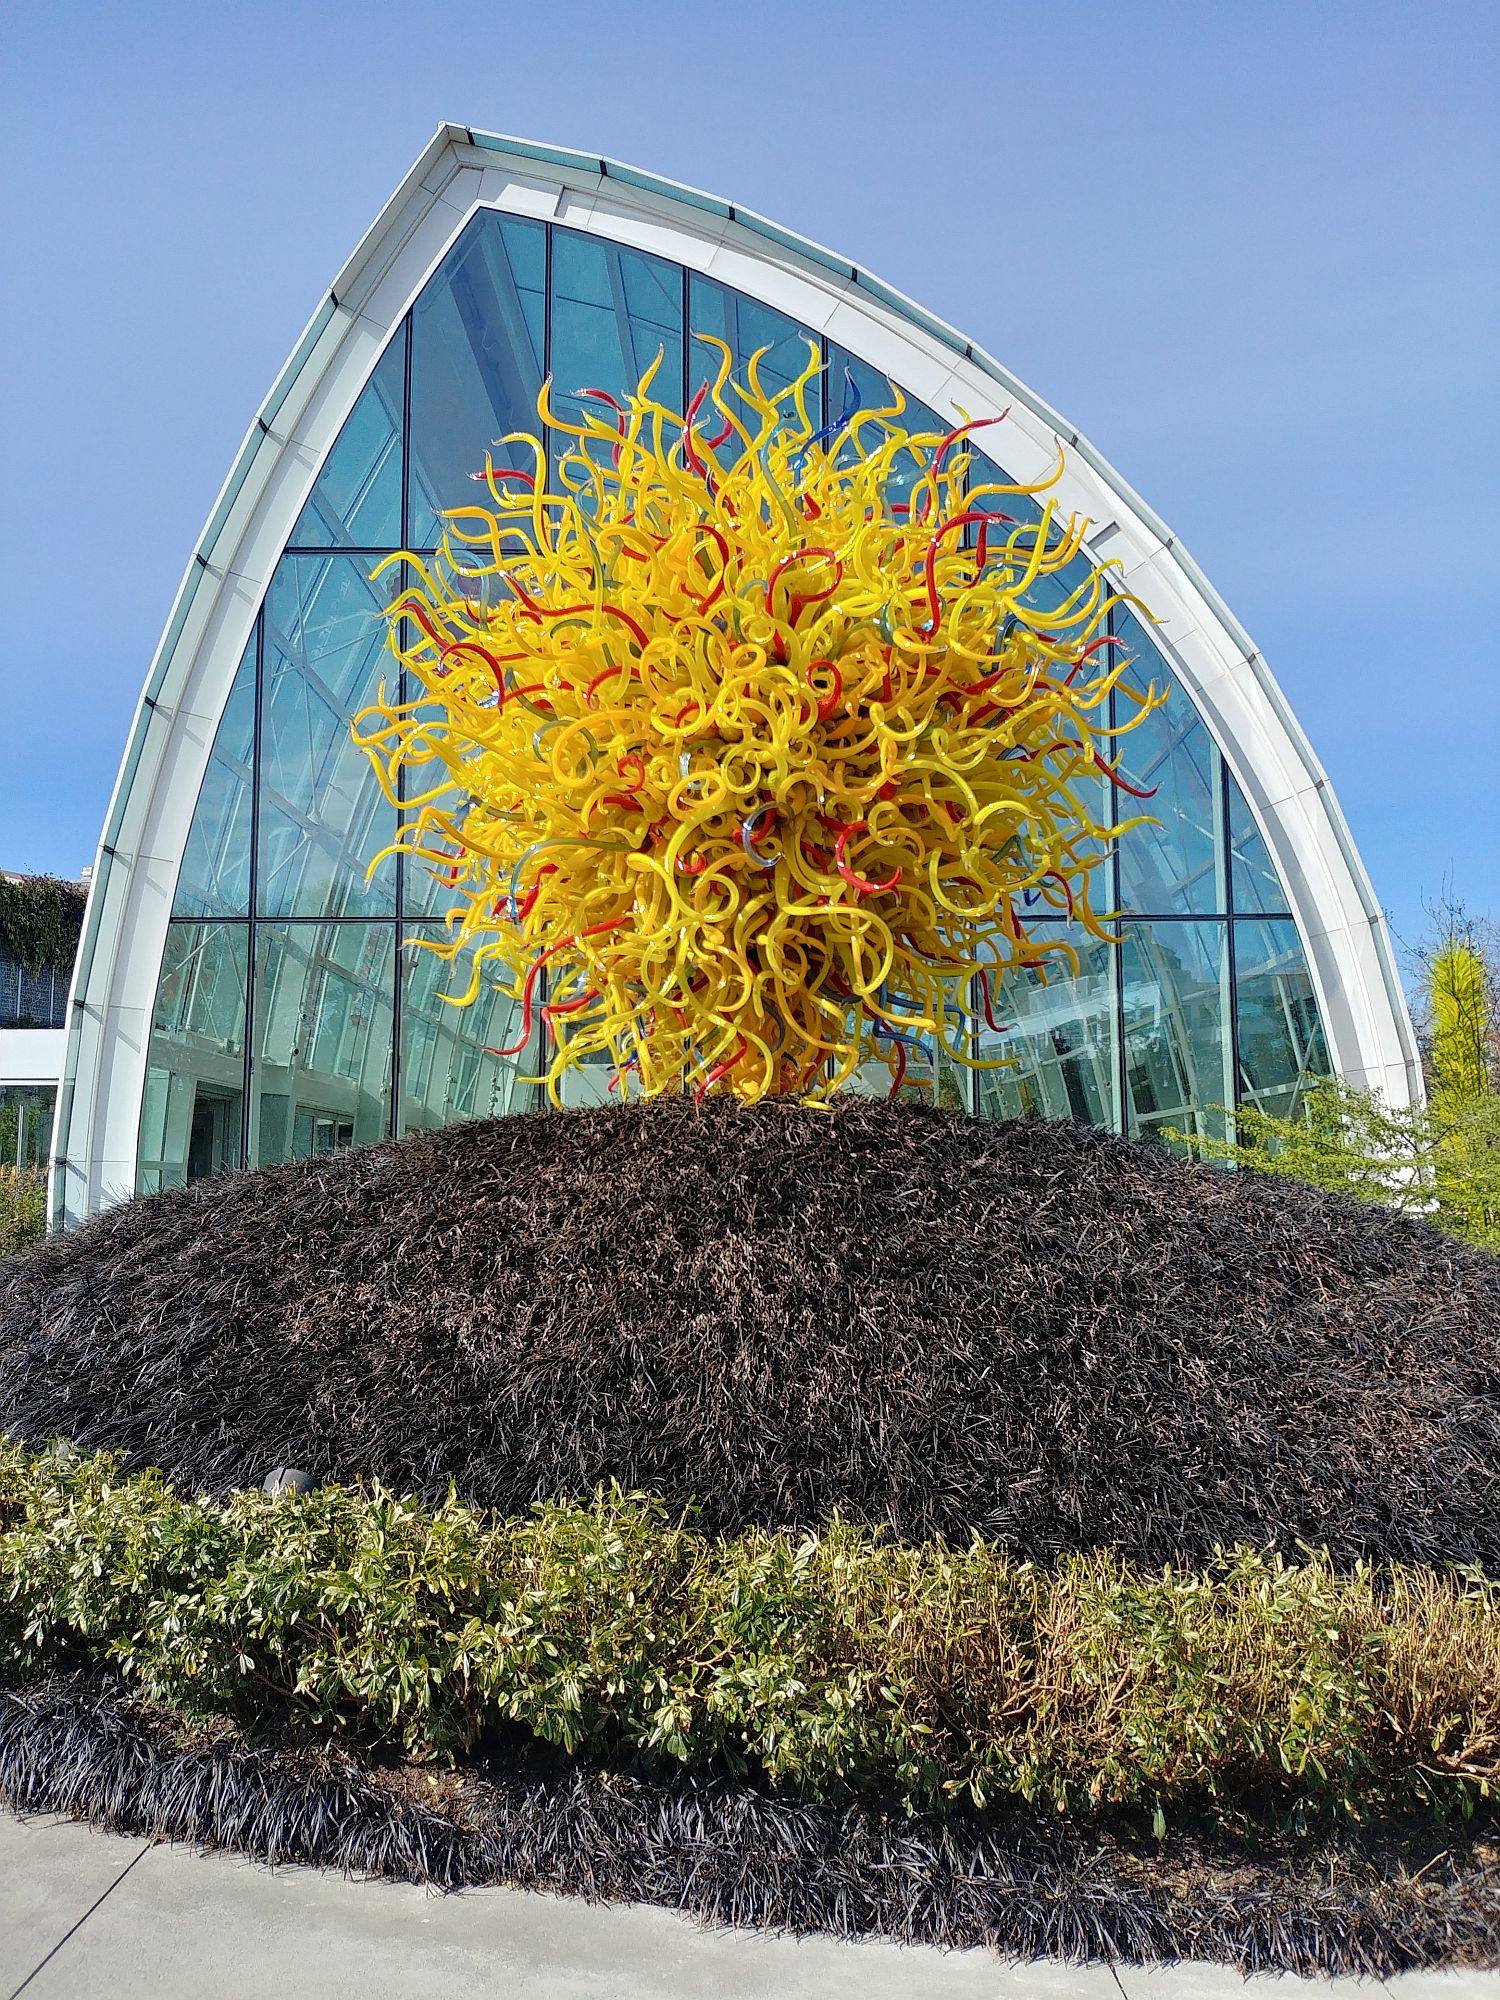 Chihuly Glass and Garden - 101